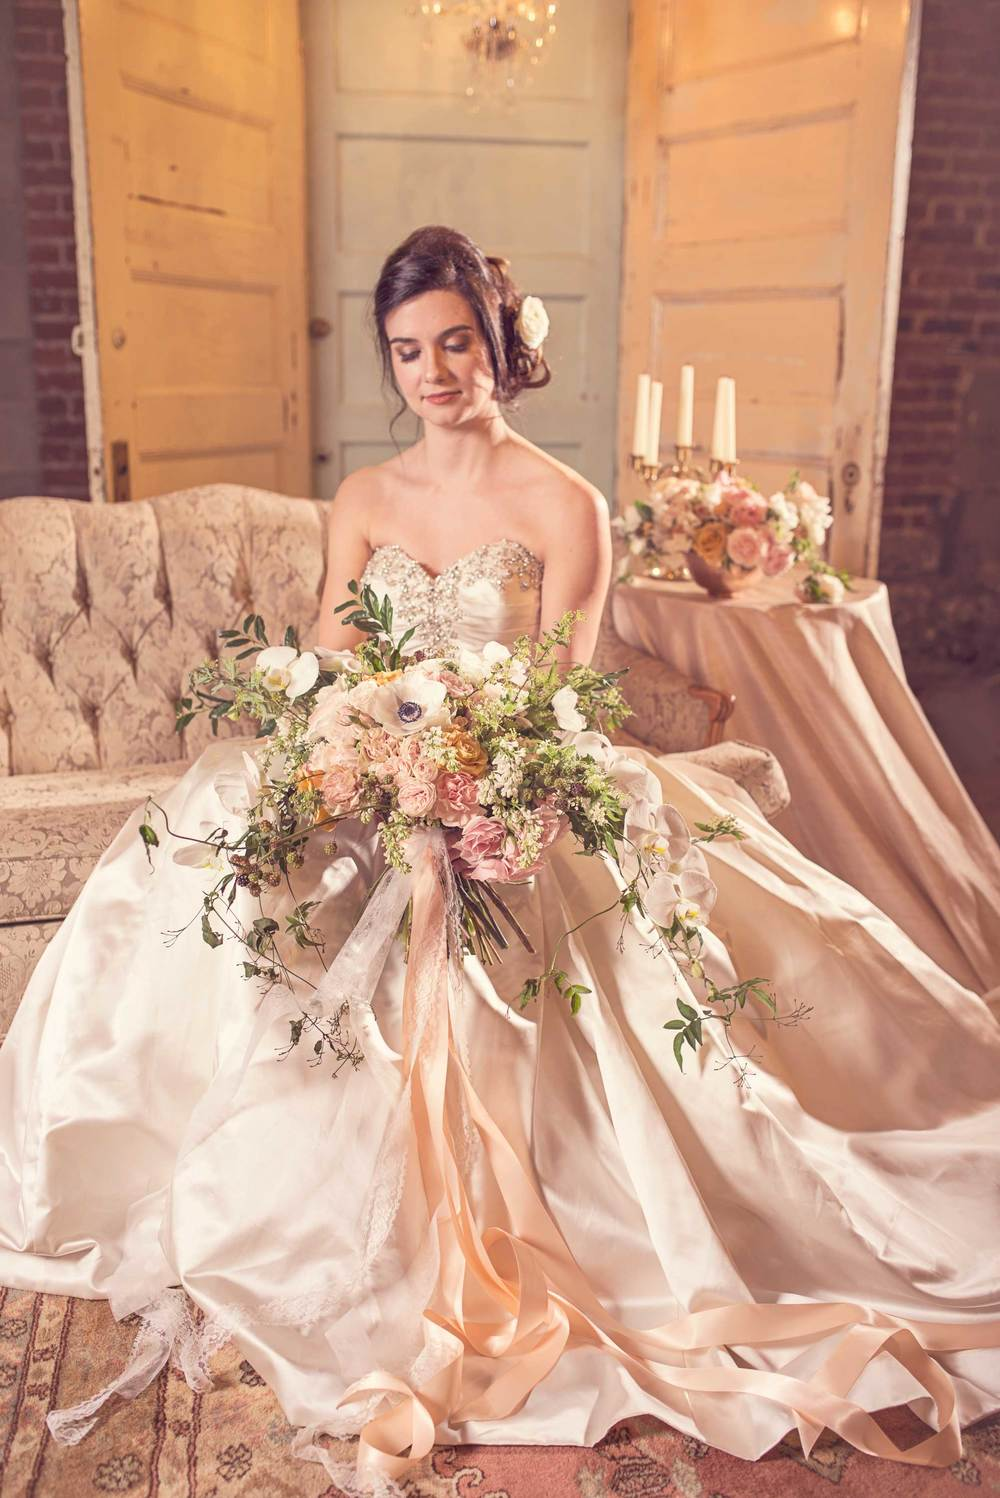 Kelsey Lane Photography_Styled Wedding Shoot_Blush Wedding_Seattle Wedding photographer_3